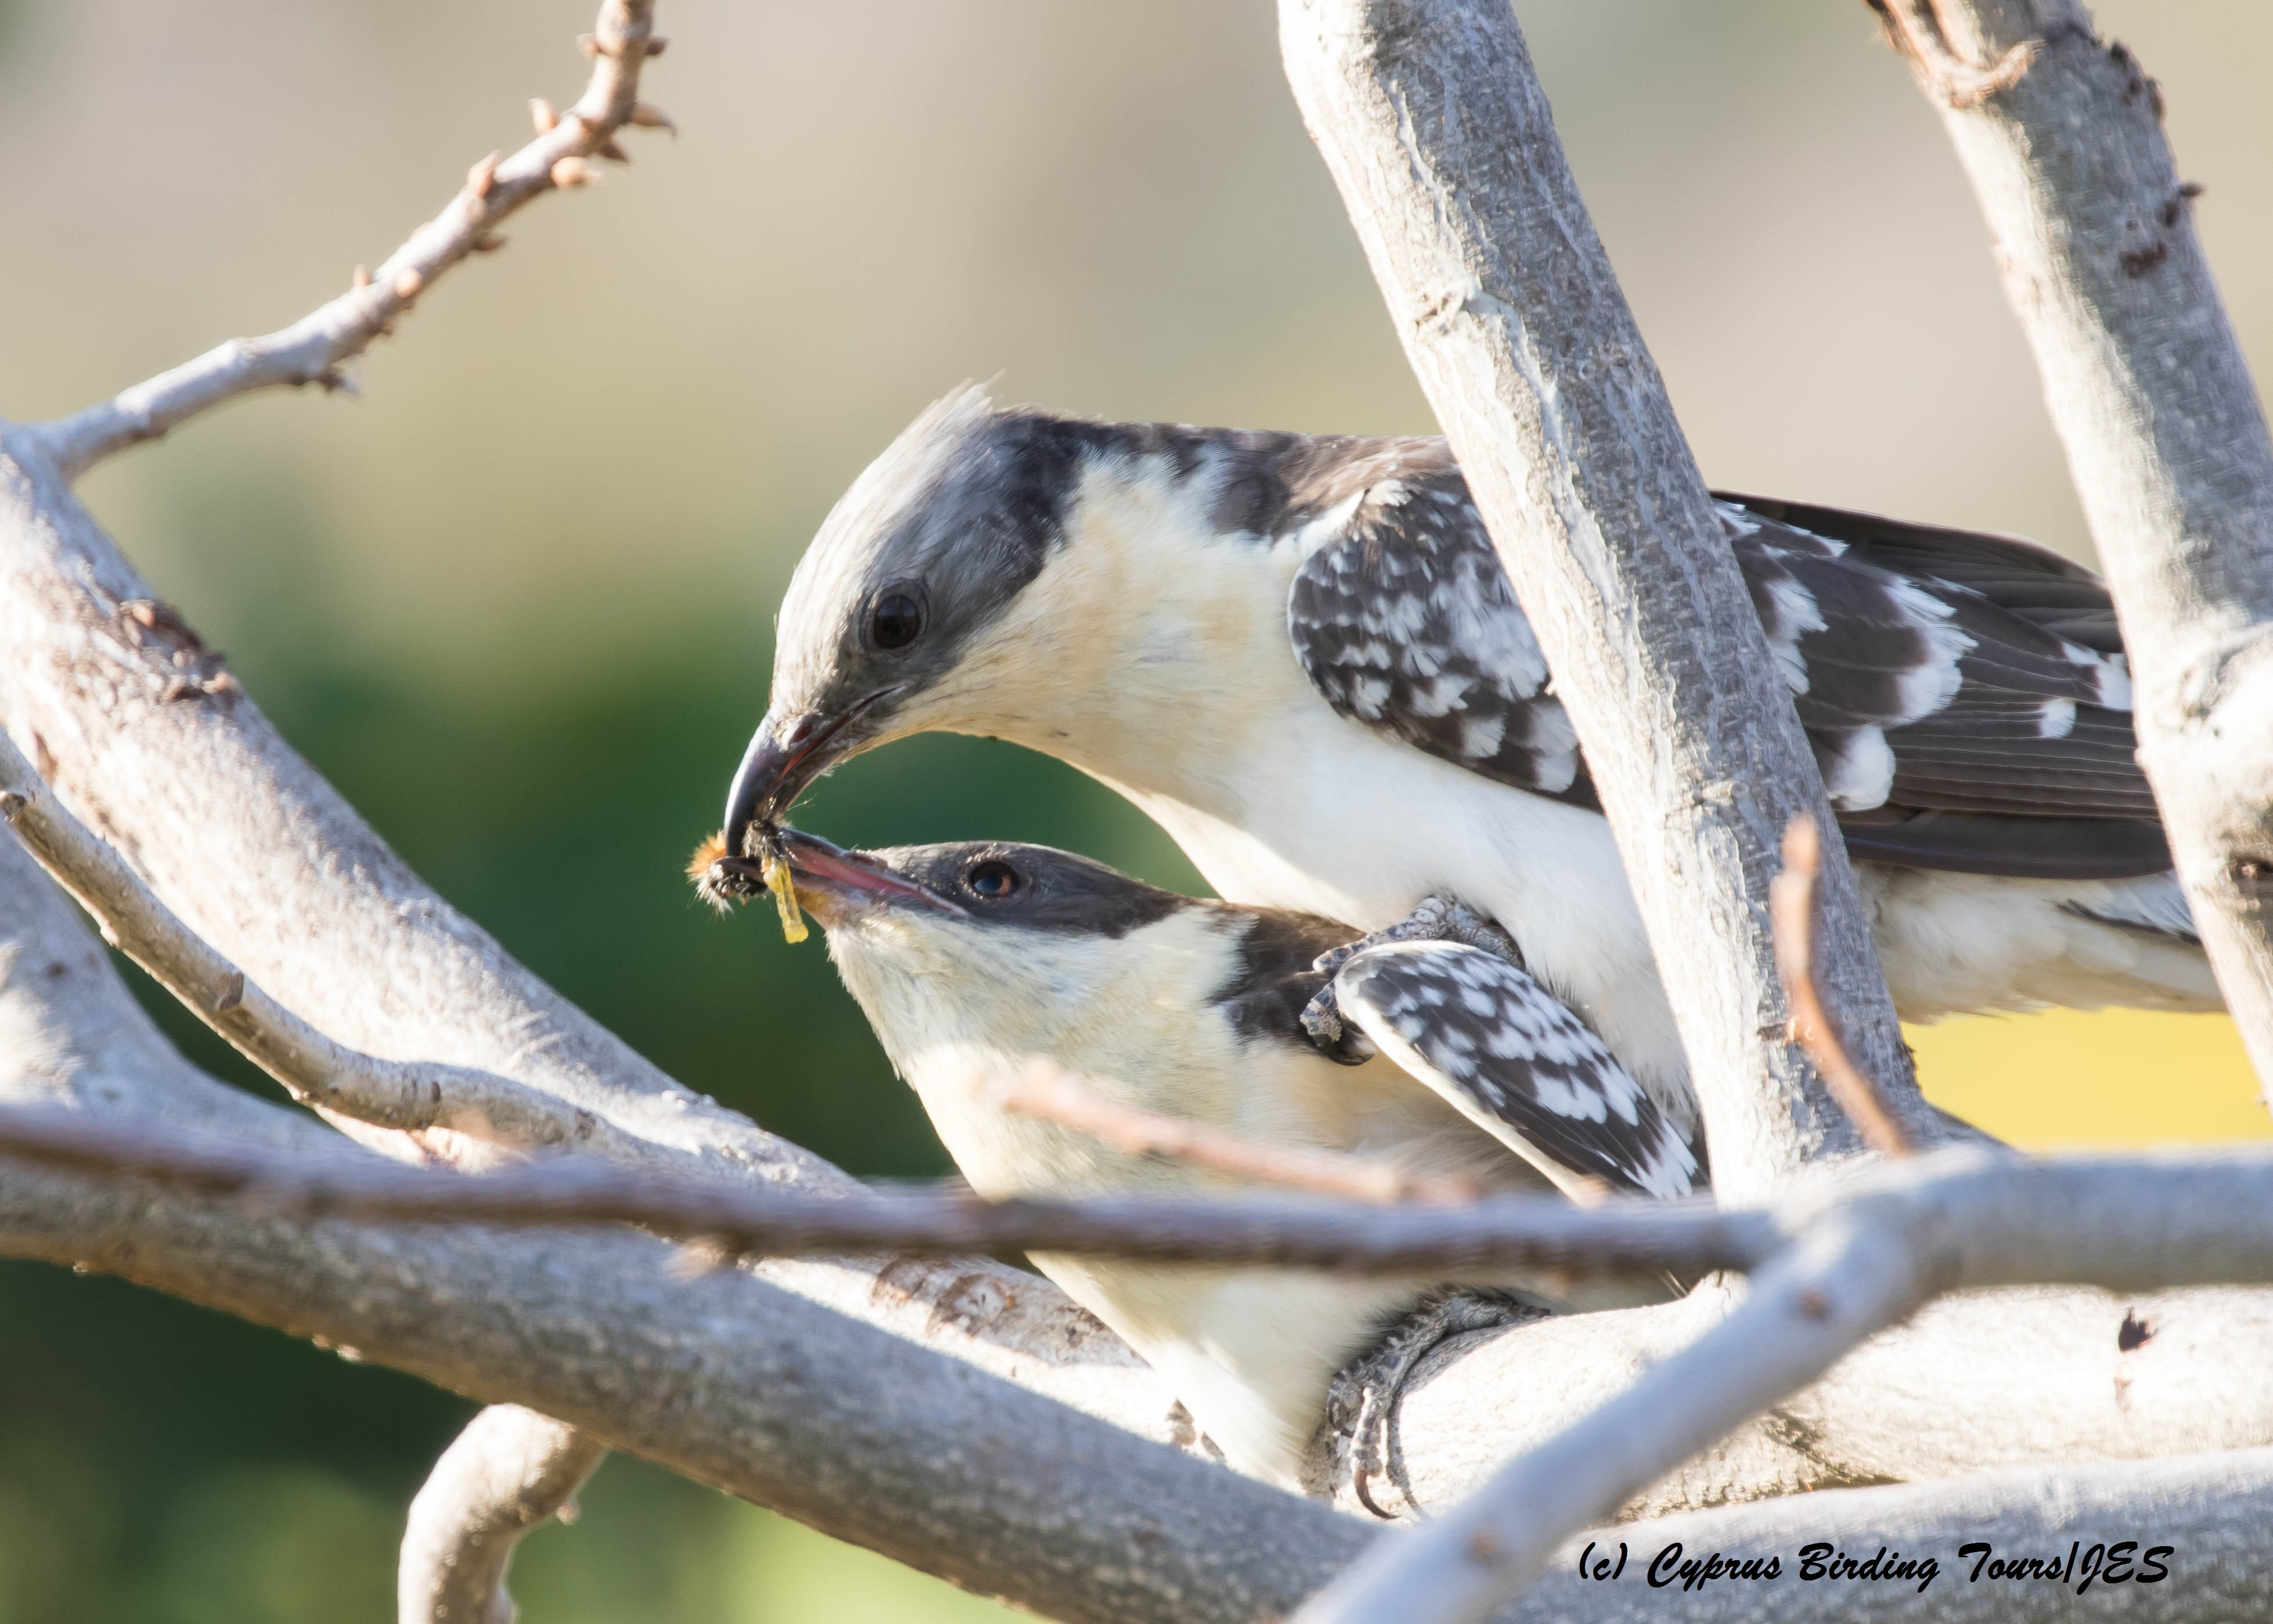 Great Spotted Cuckoo mating, Agia Varvara 22nd March 2016 (c) Cyprus Birding Tours